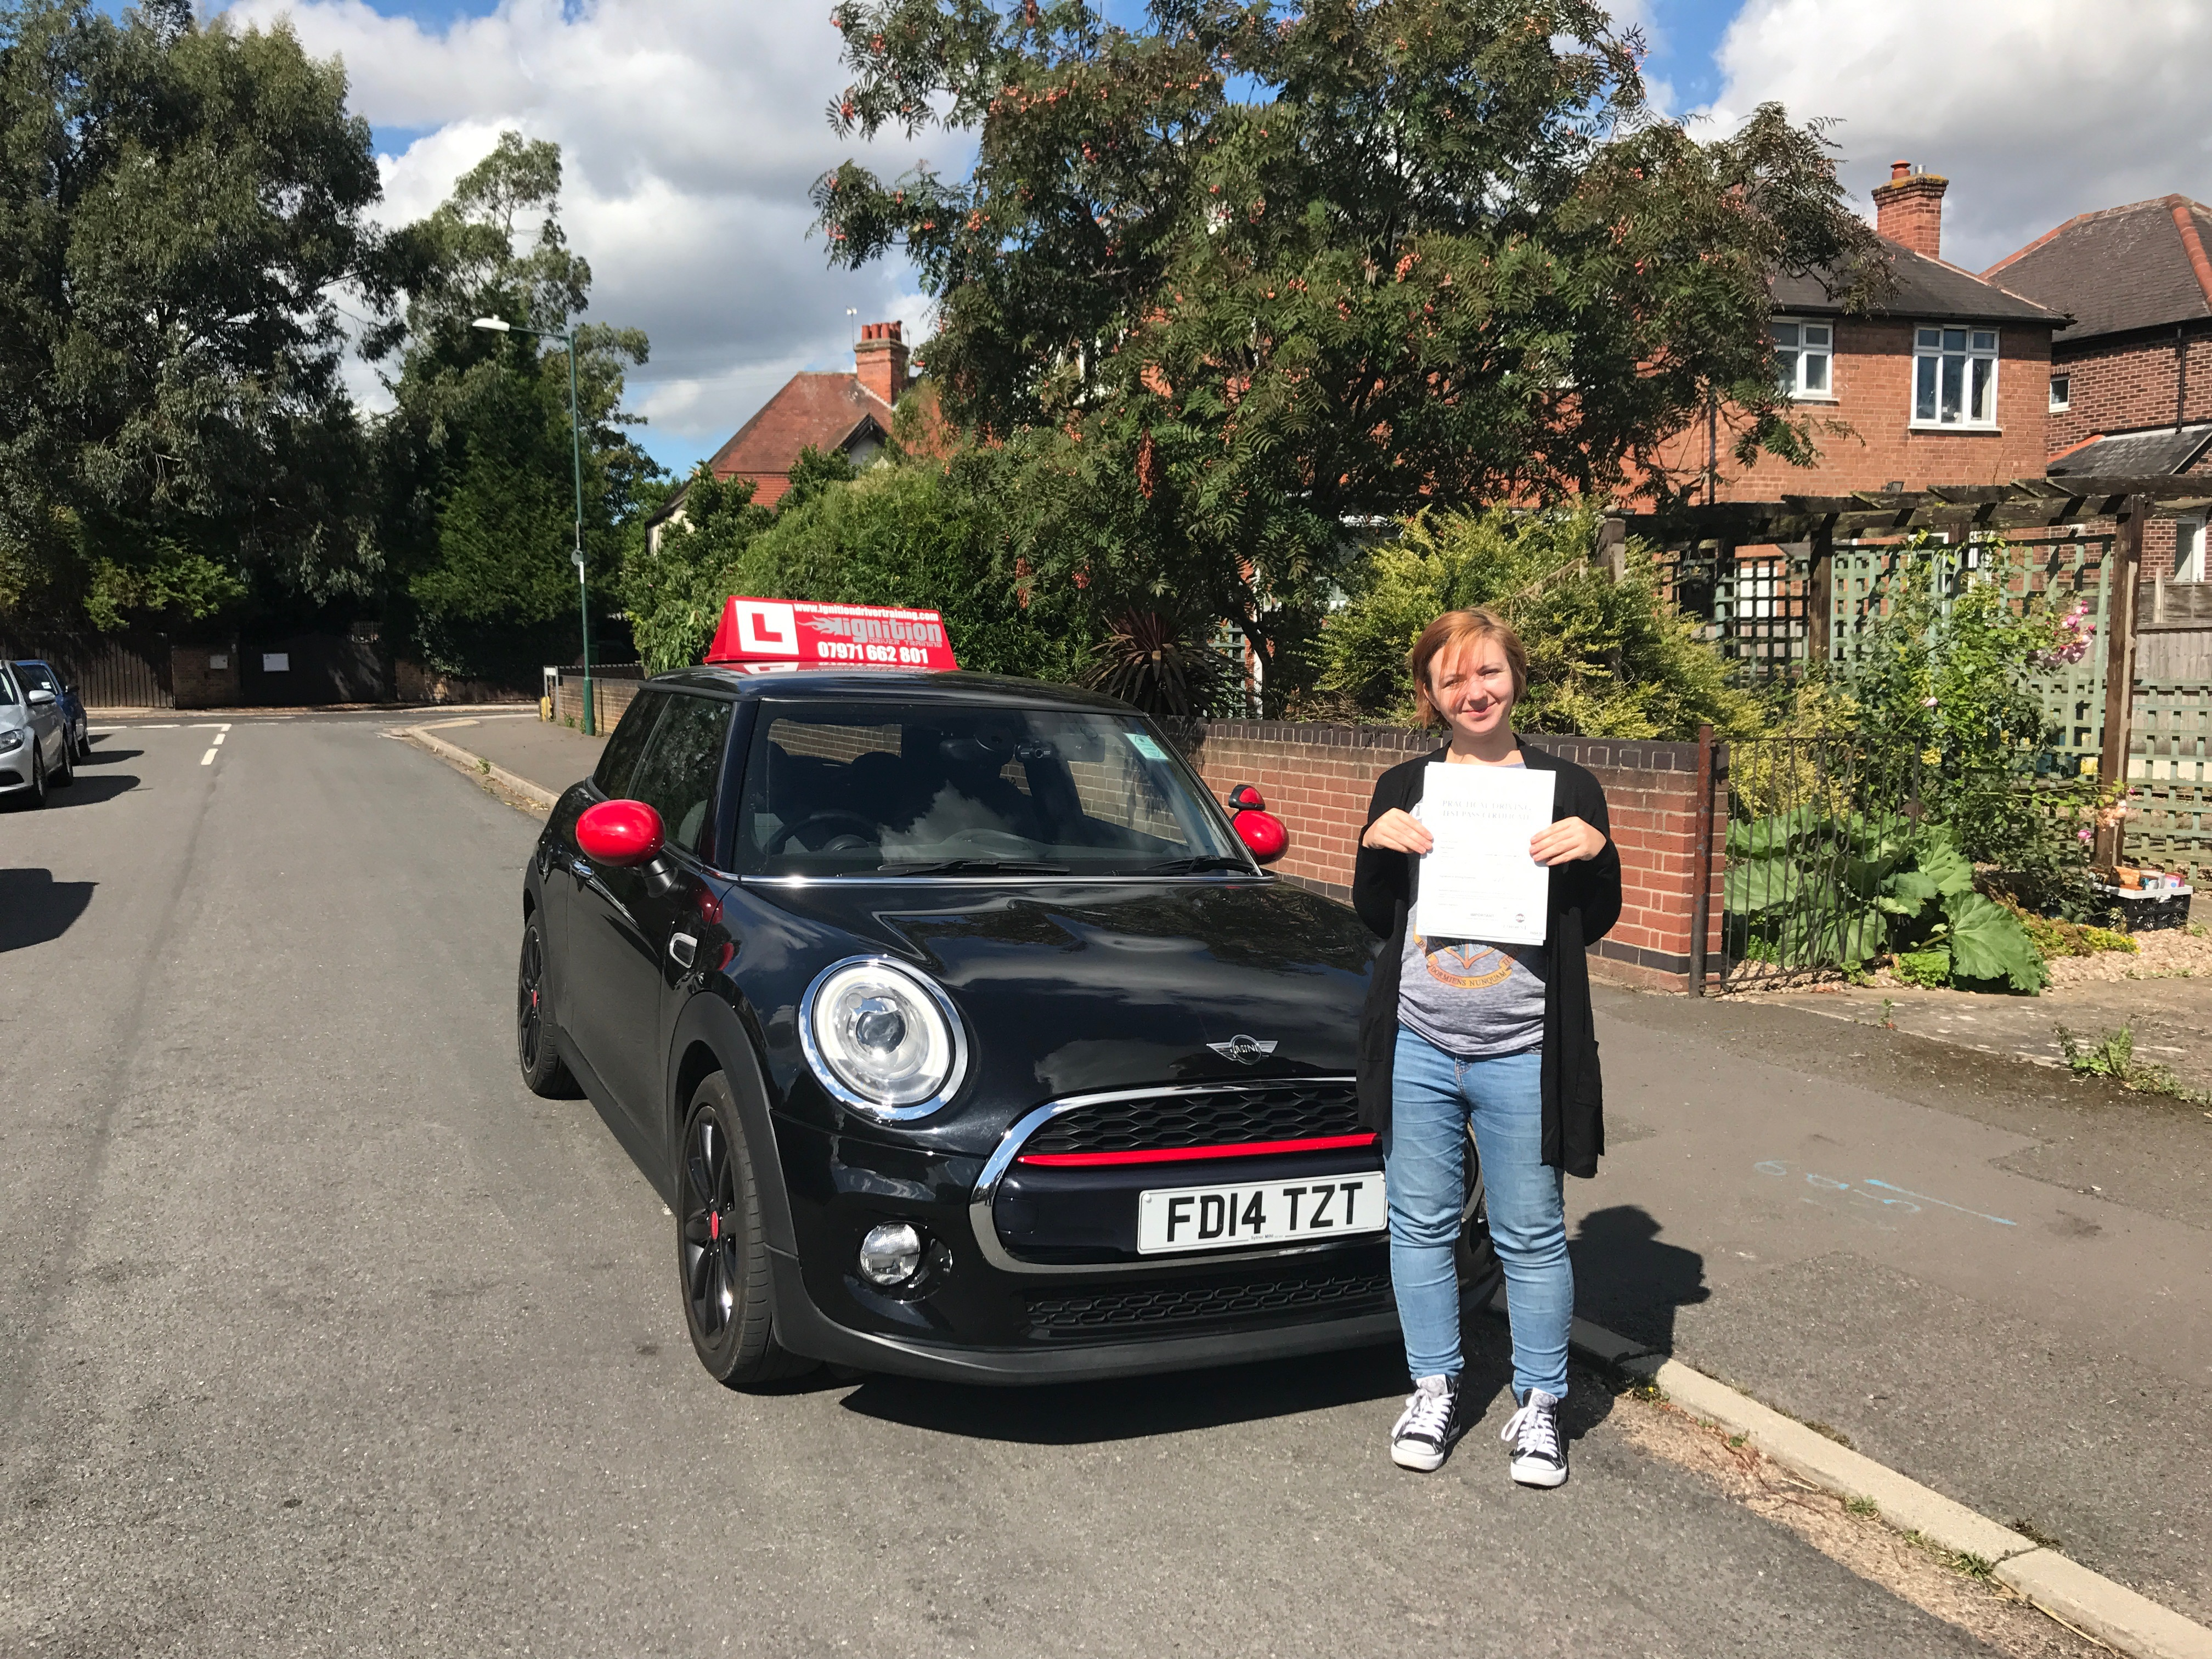 Jodie passed her test first time!